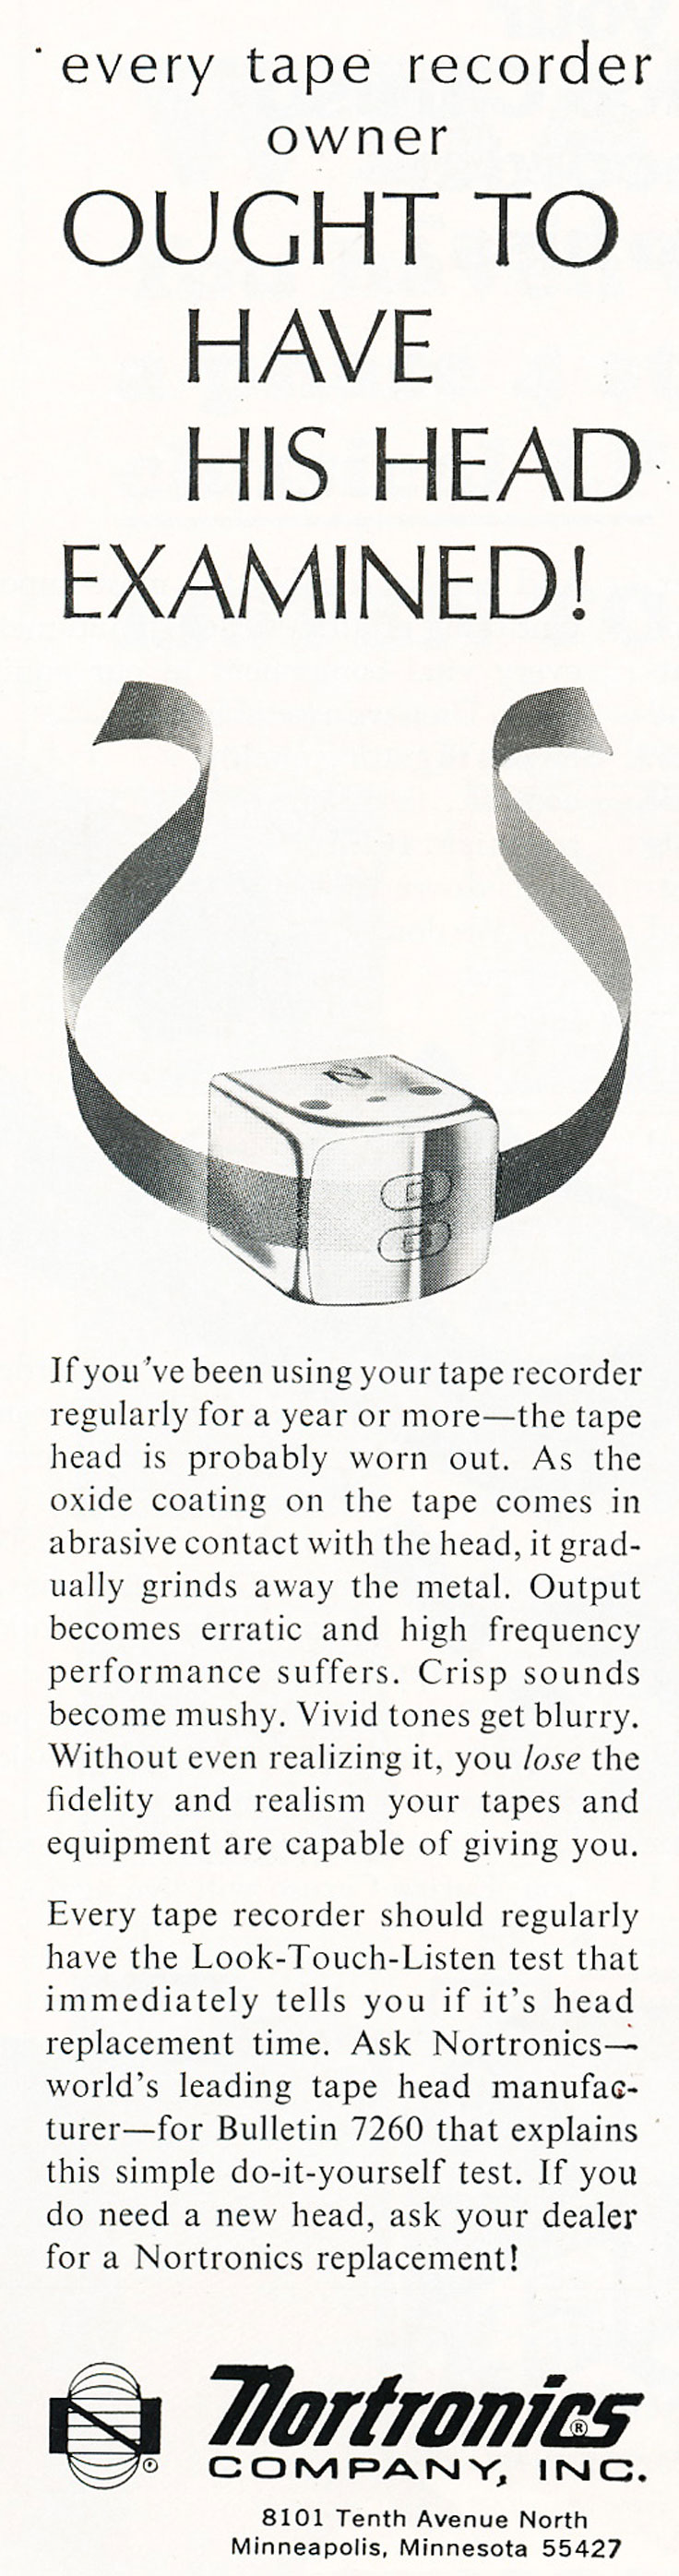 1967 ad for Nortronics reel to reel tape recorder heads in Reel2ReelTexas.com's vintage recording collection